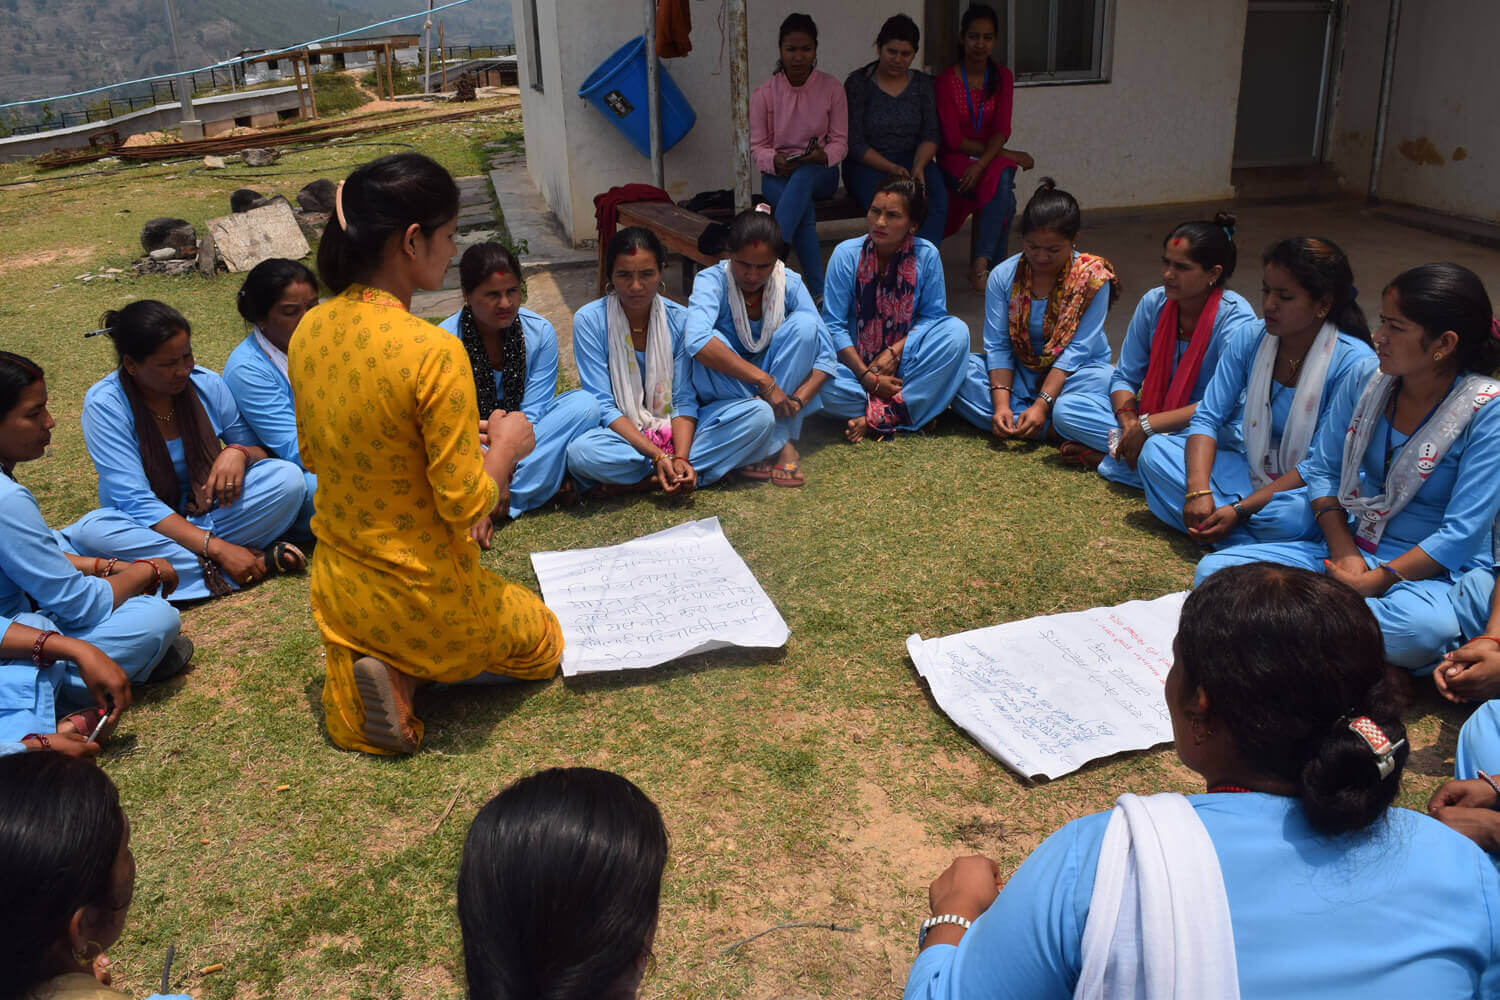 Tipping point on menstrual banishment in Nepal